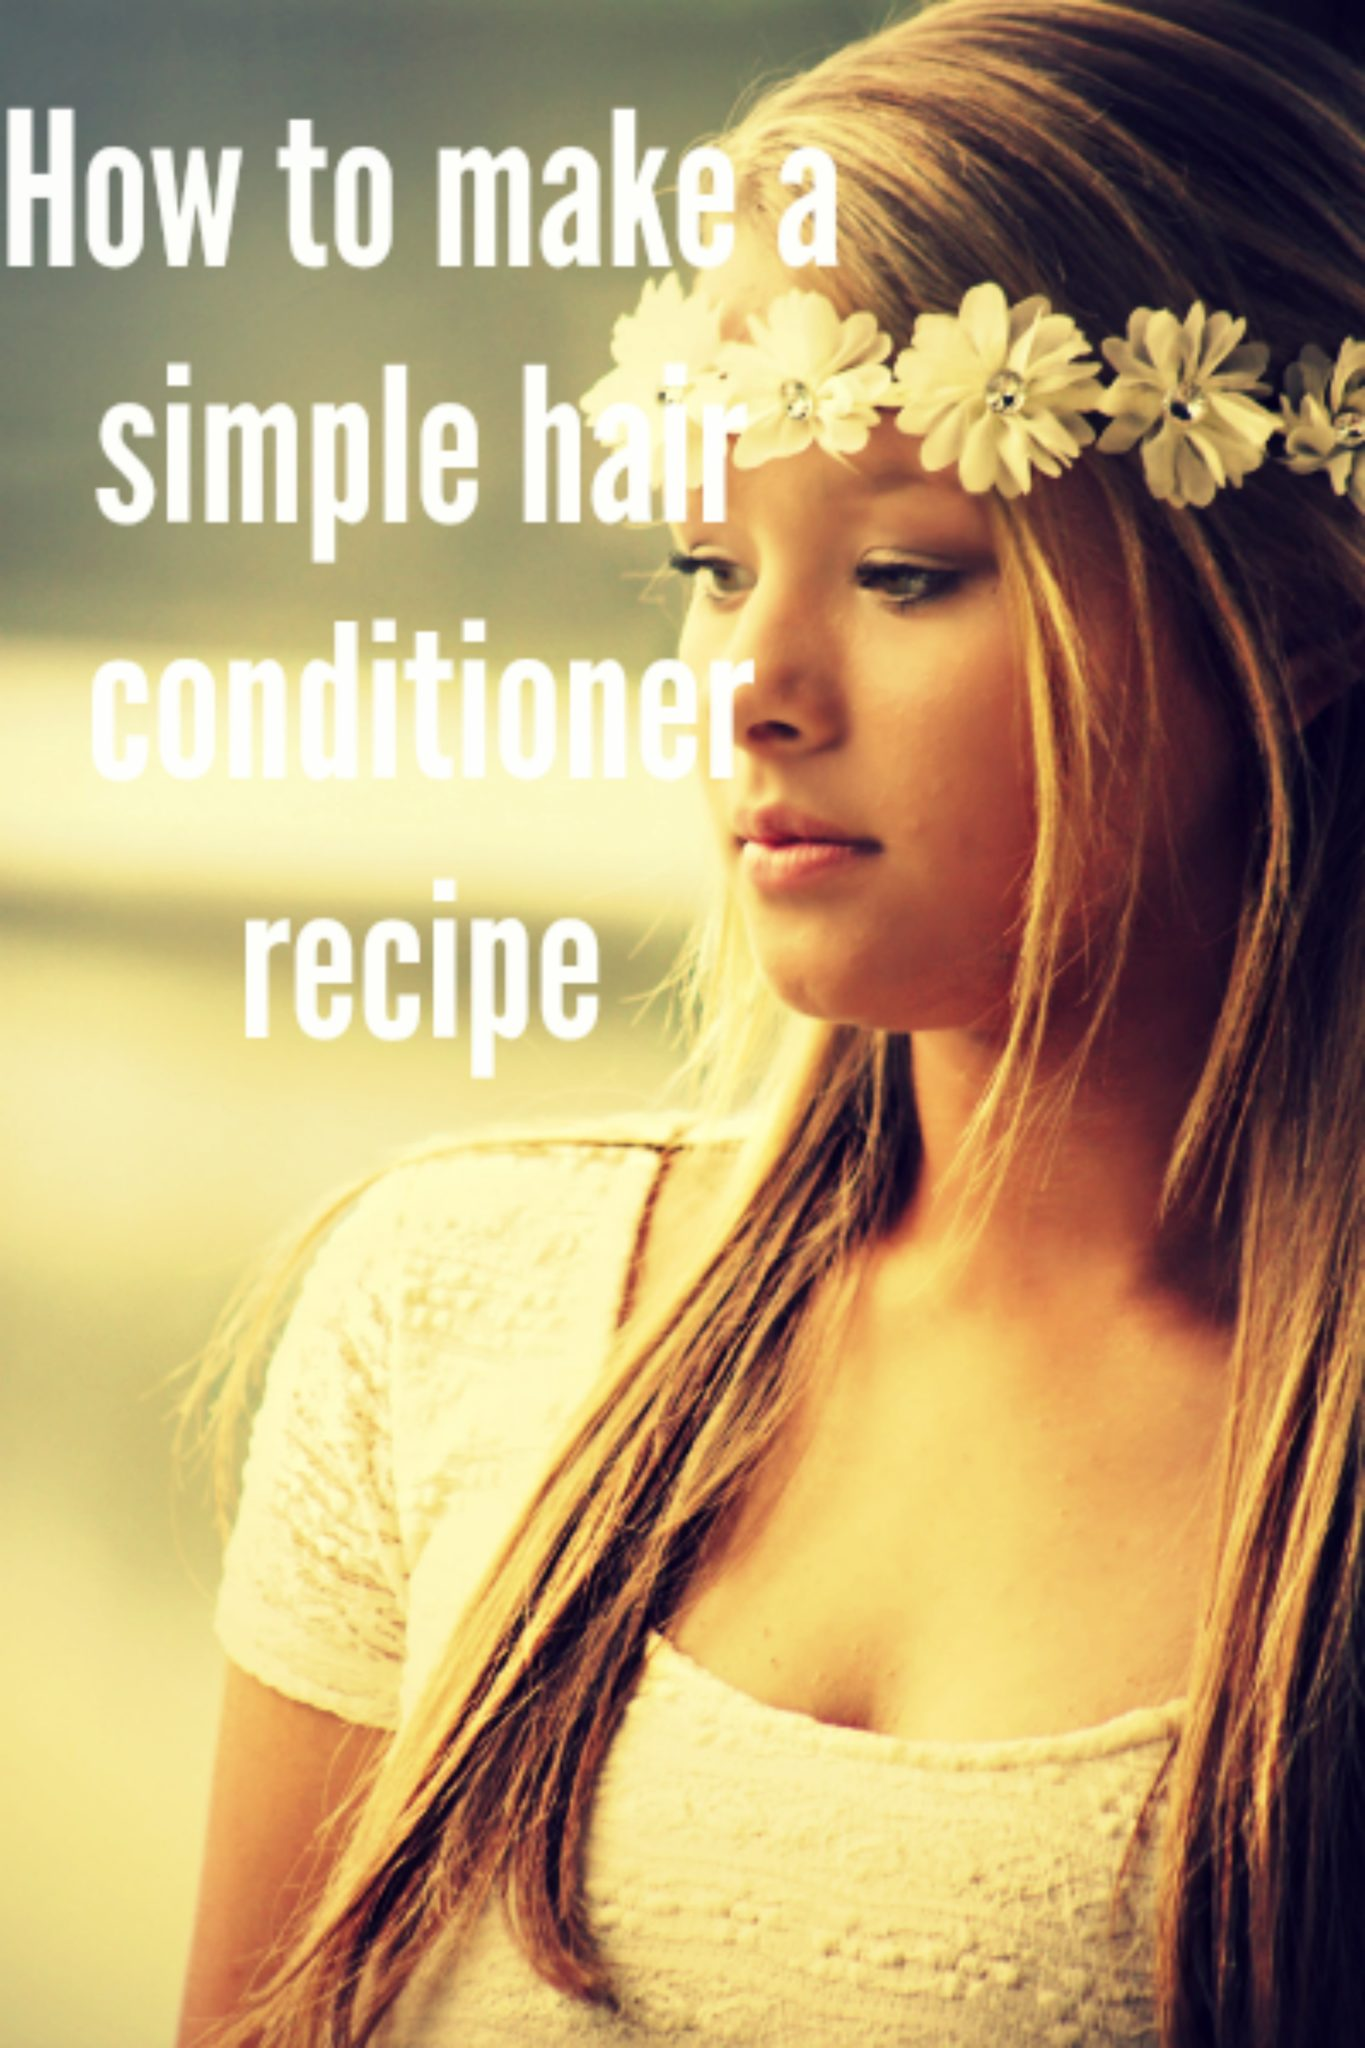 hair conditioner recipe